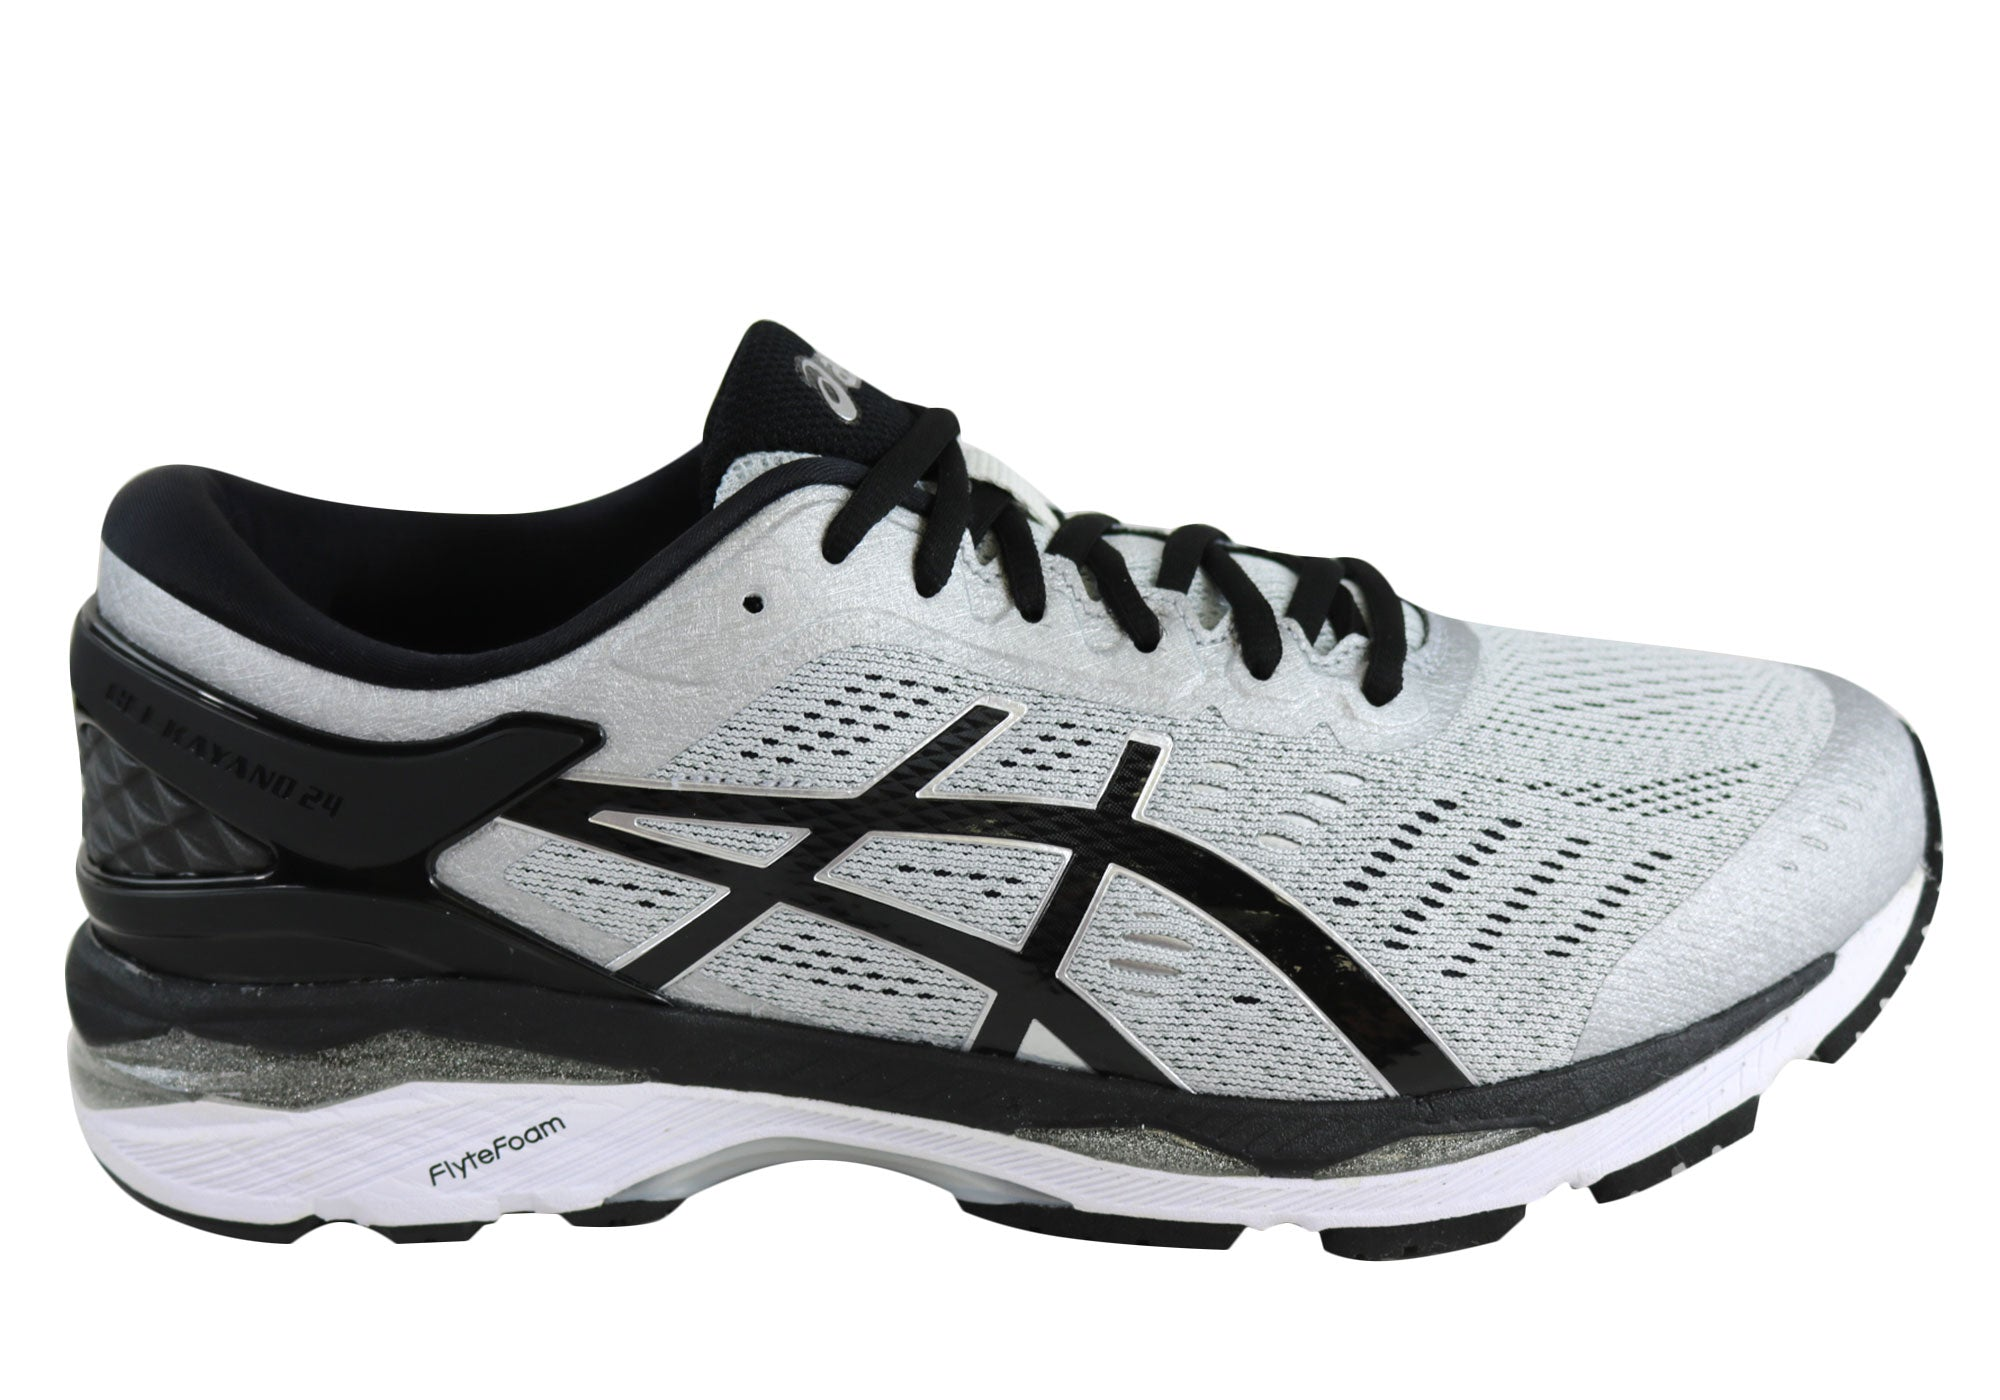 33acb7860be Asics Gel Kayano 24 Mens Running Sport Shoes (D Width) Standard ...